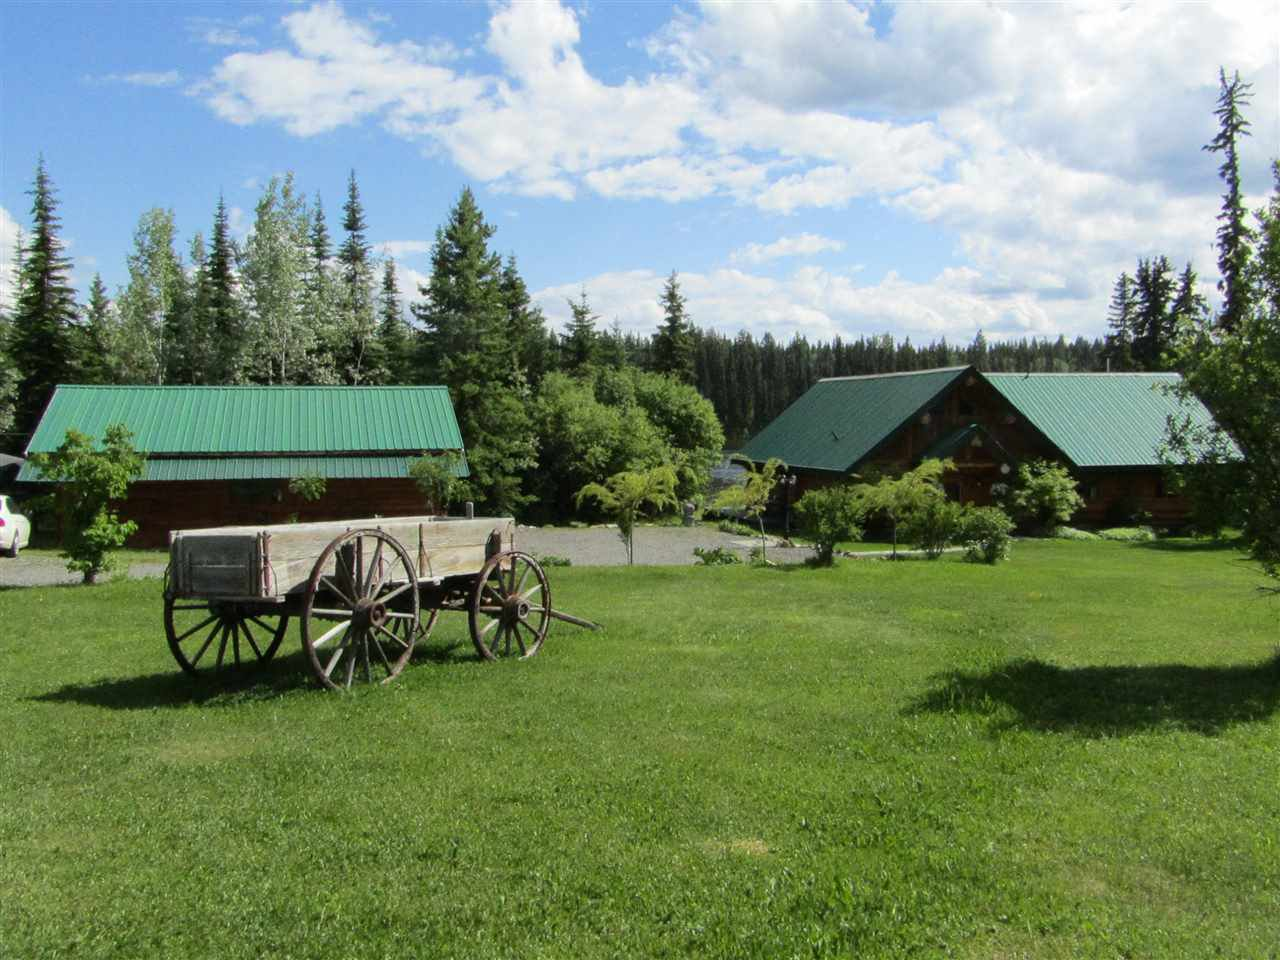 Main Photo: 3350 LIKELY Road in Williams Lake: Williams Lake - Rural East House for sale (Williams Lake (Zone 27))  : MLS®# R2178040